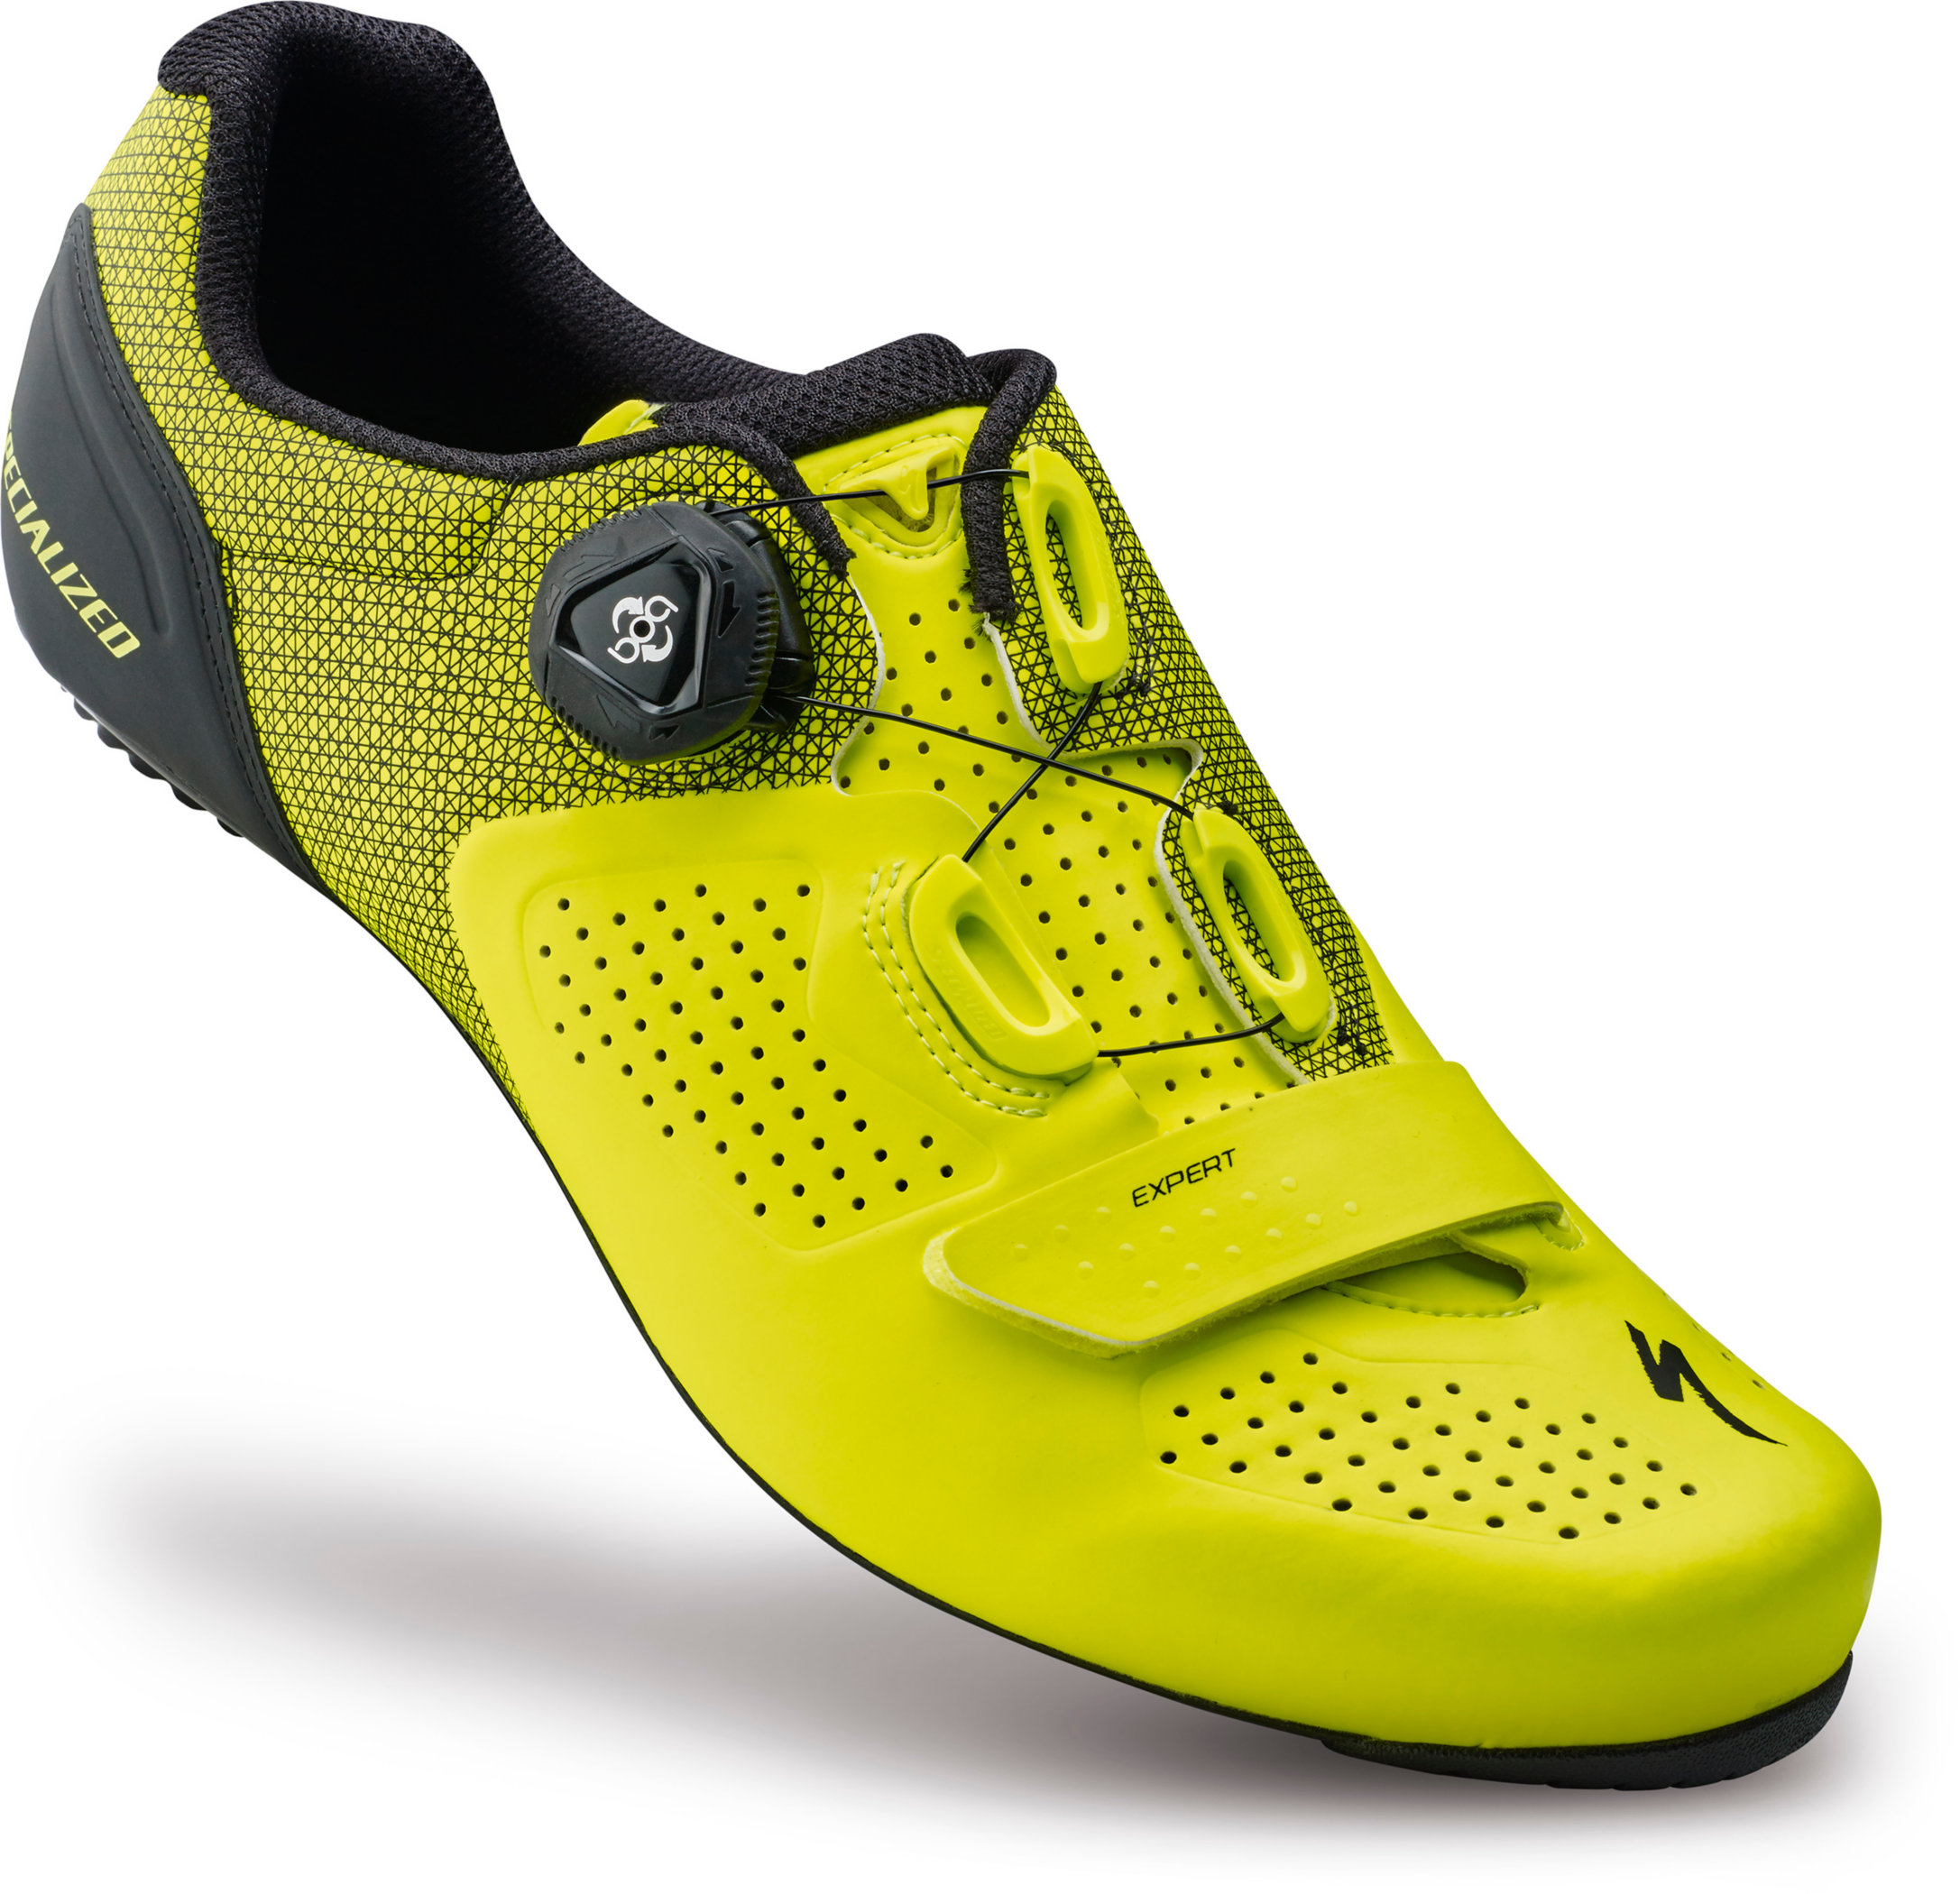 SPECIALIZED EXPERT RD SHOE NEON YEL 46/12.25 - Bikedreams & Dustbikes